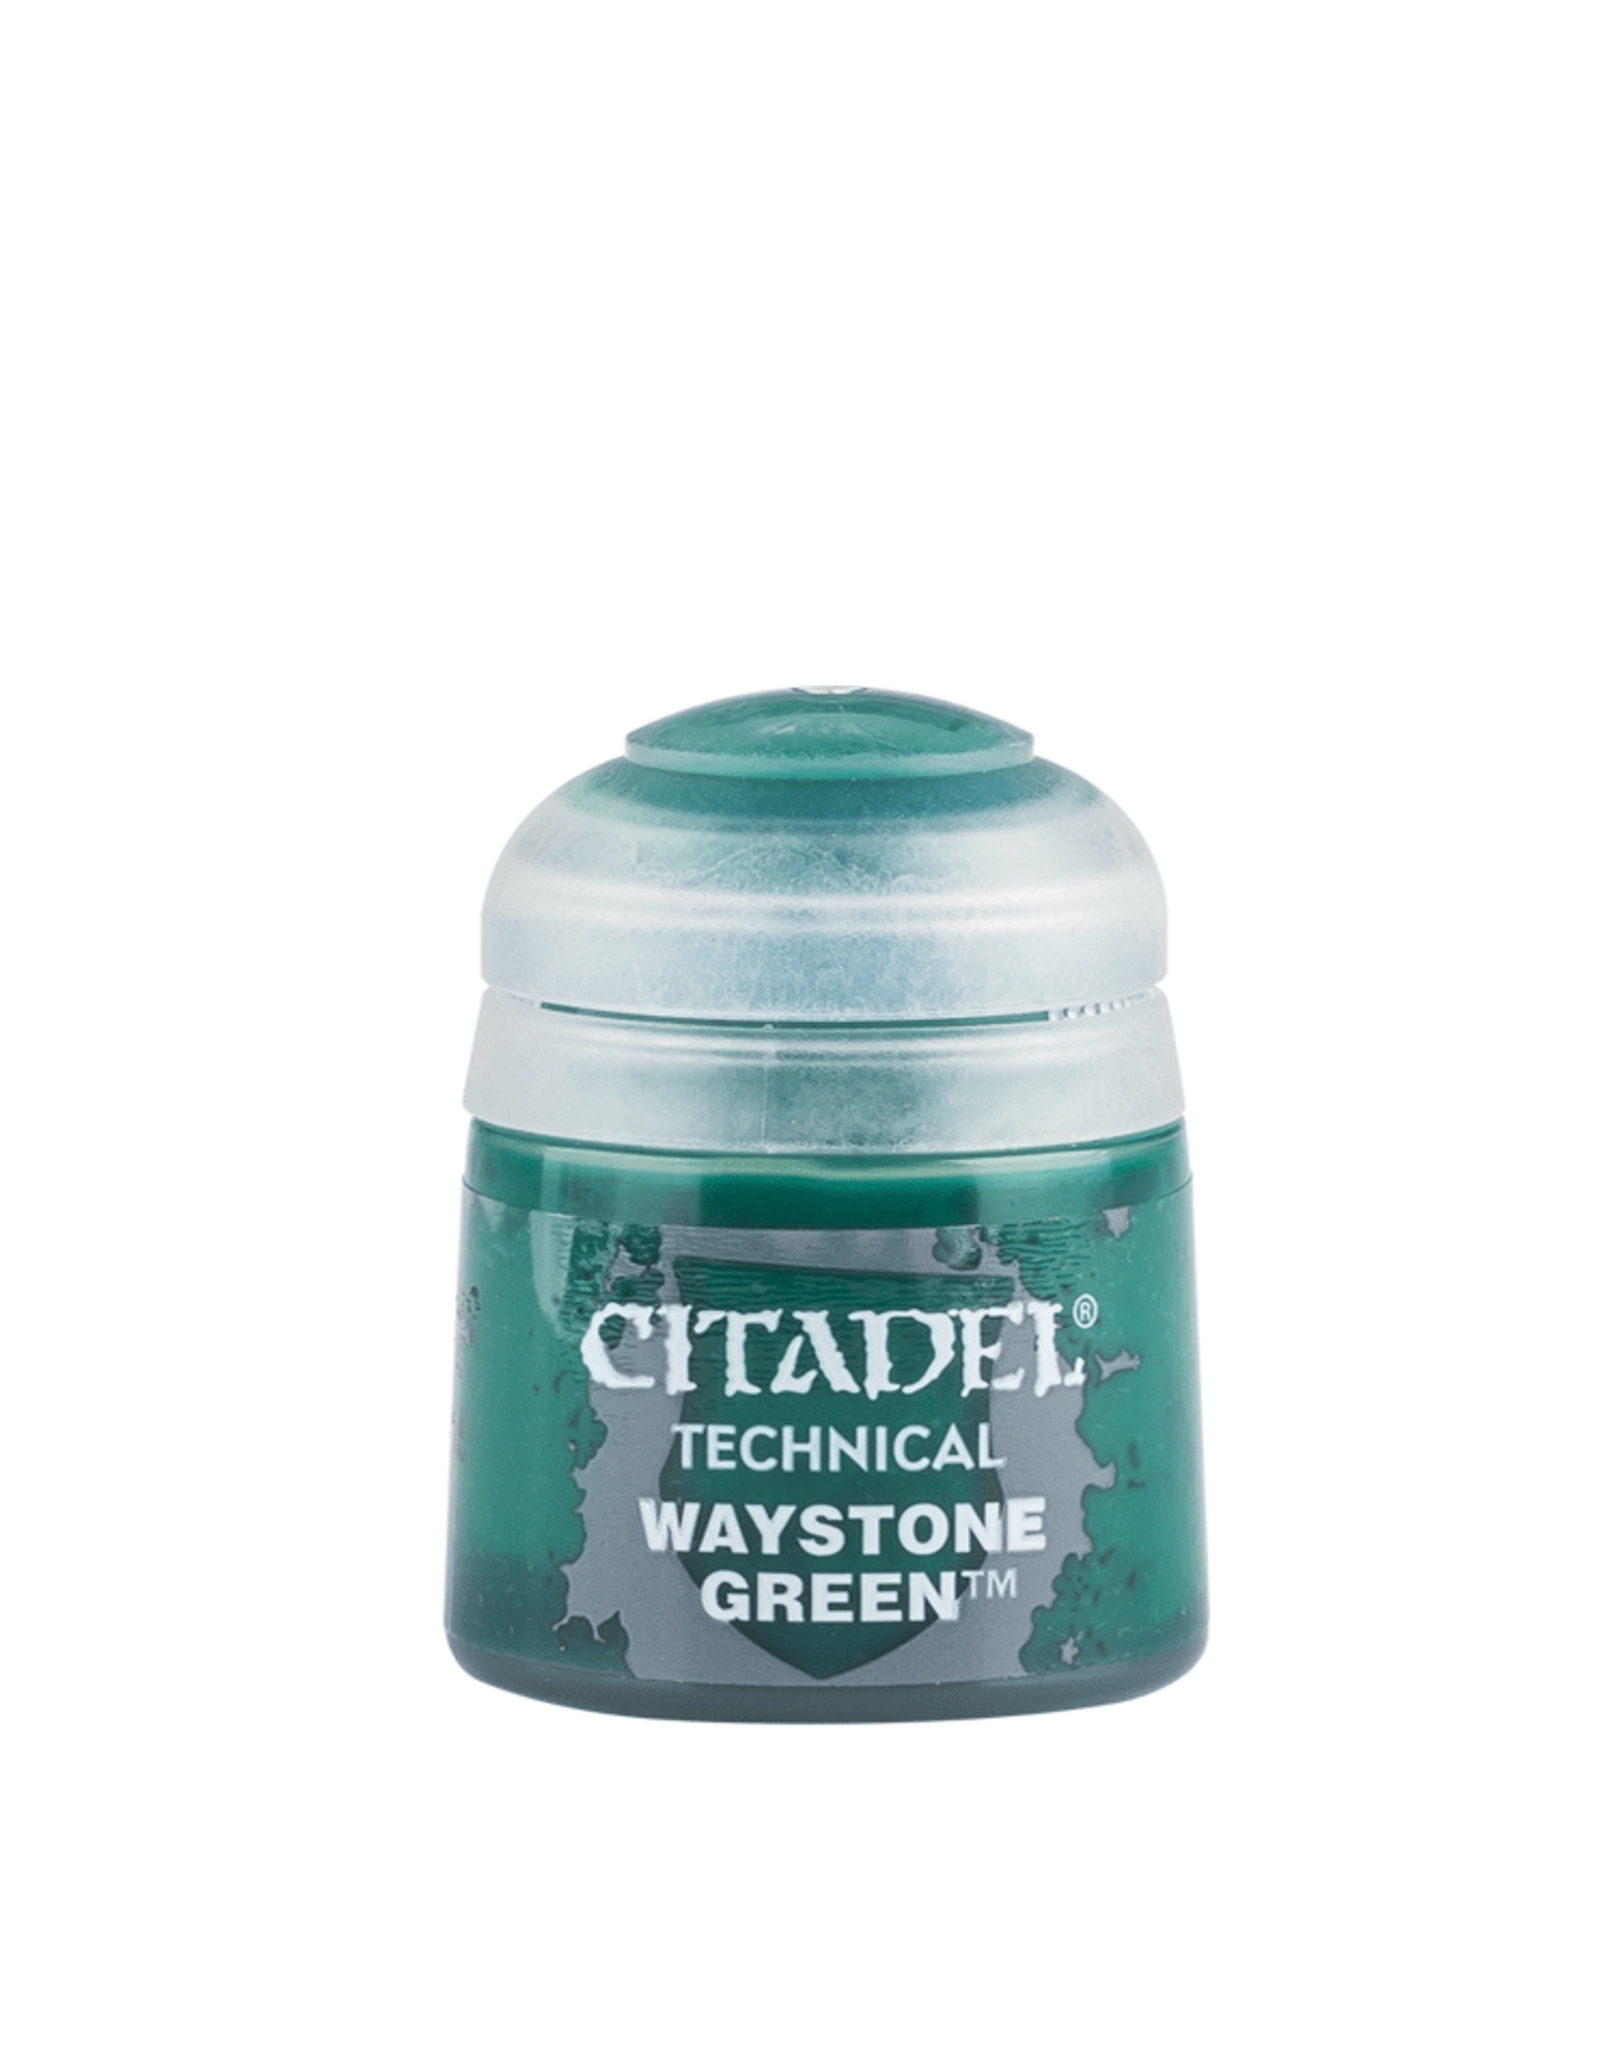 Games Workshop Citadel Technical: Waystone Green